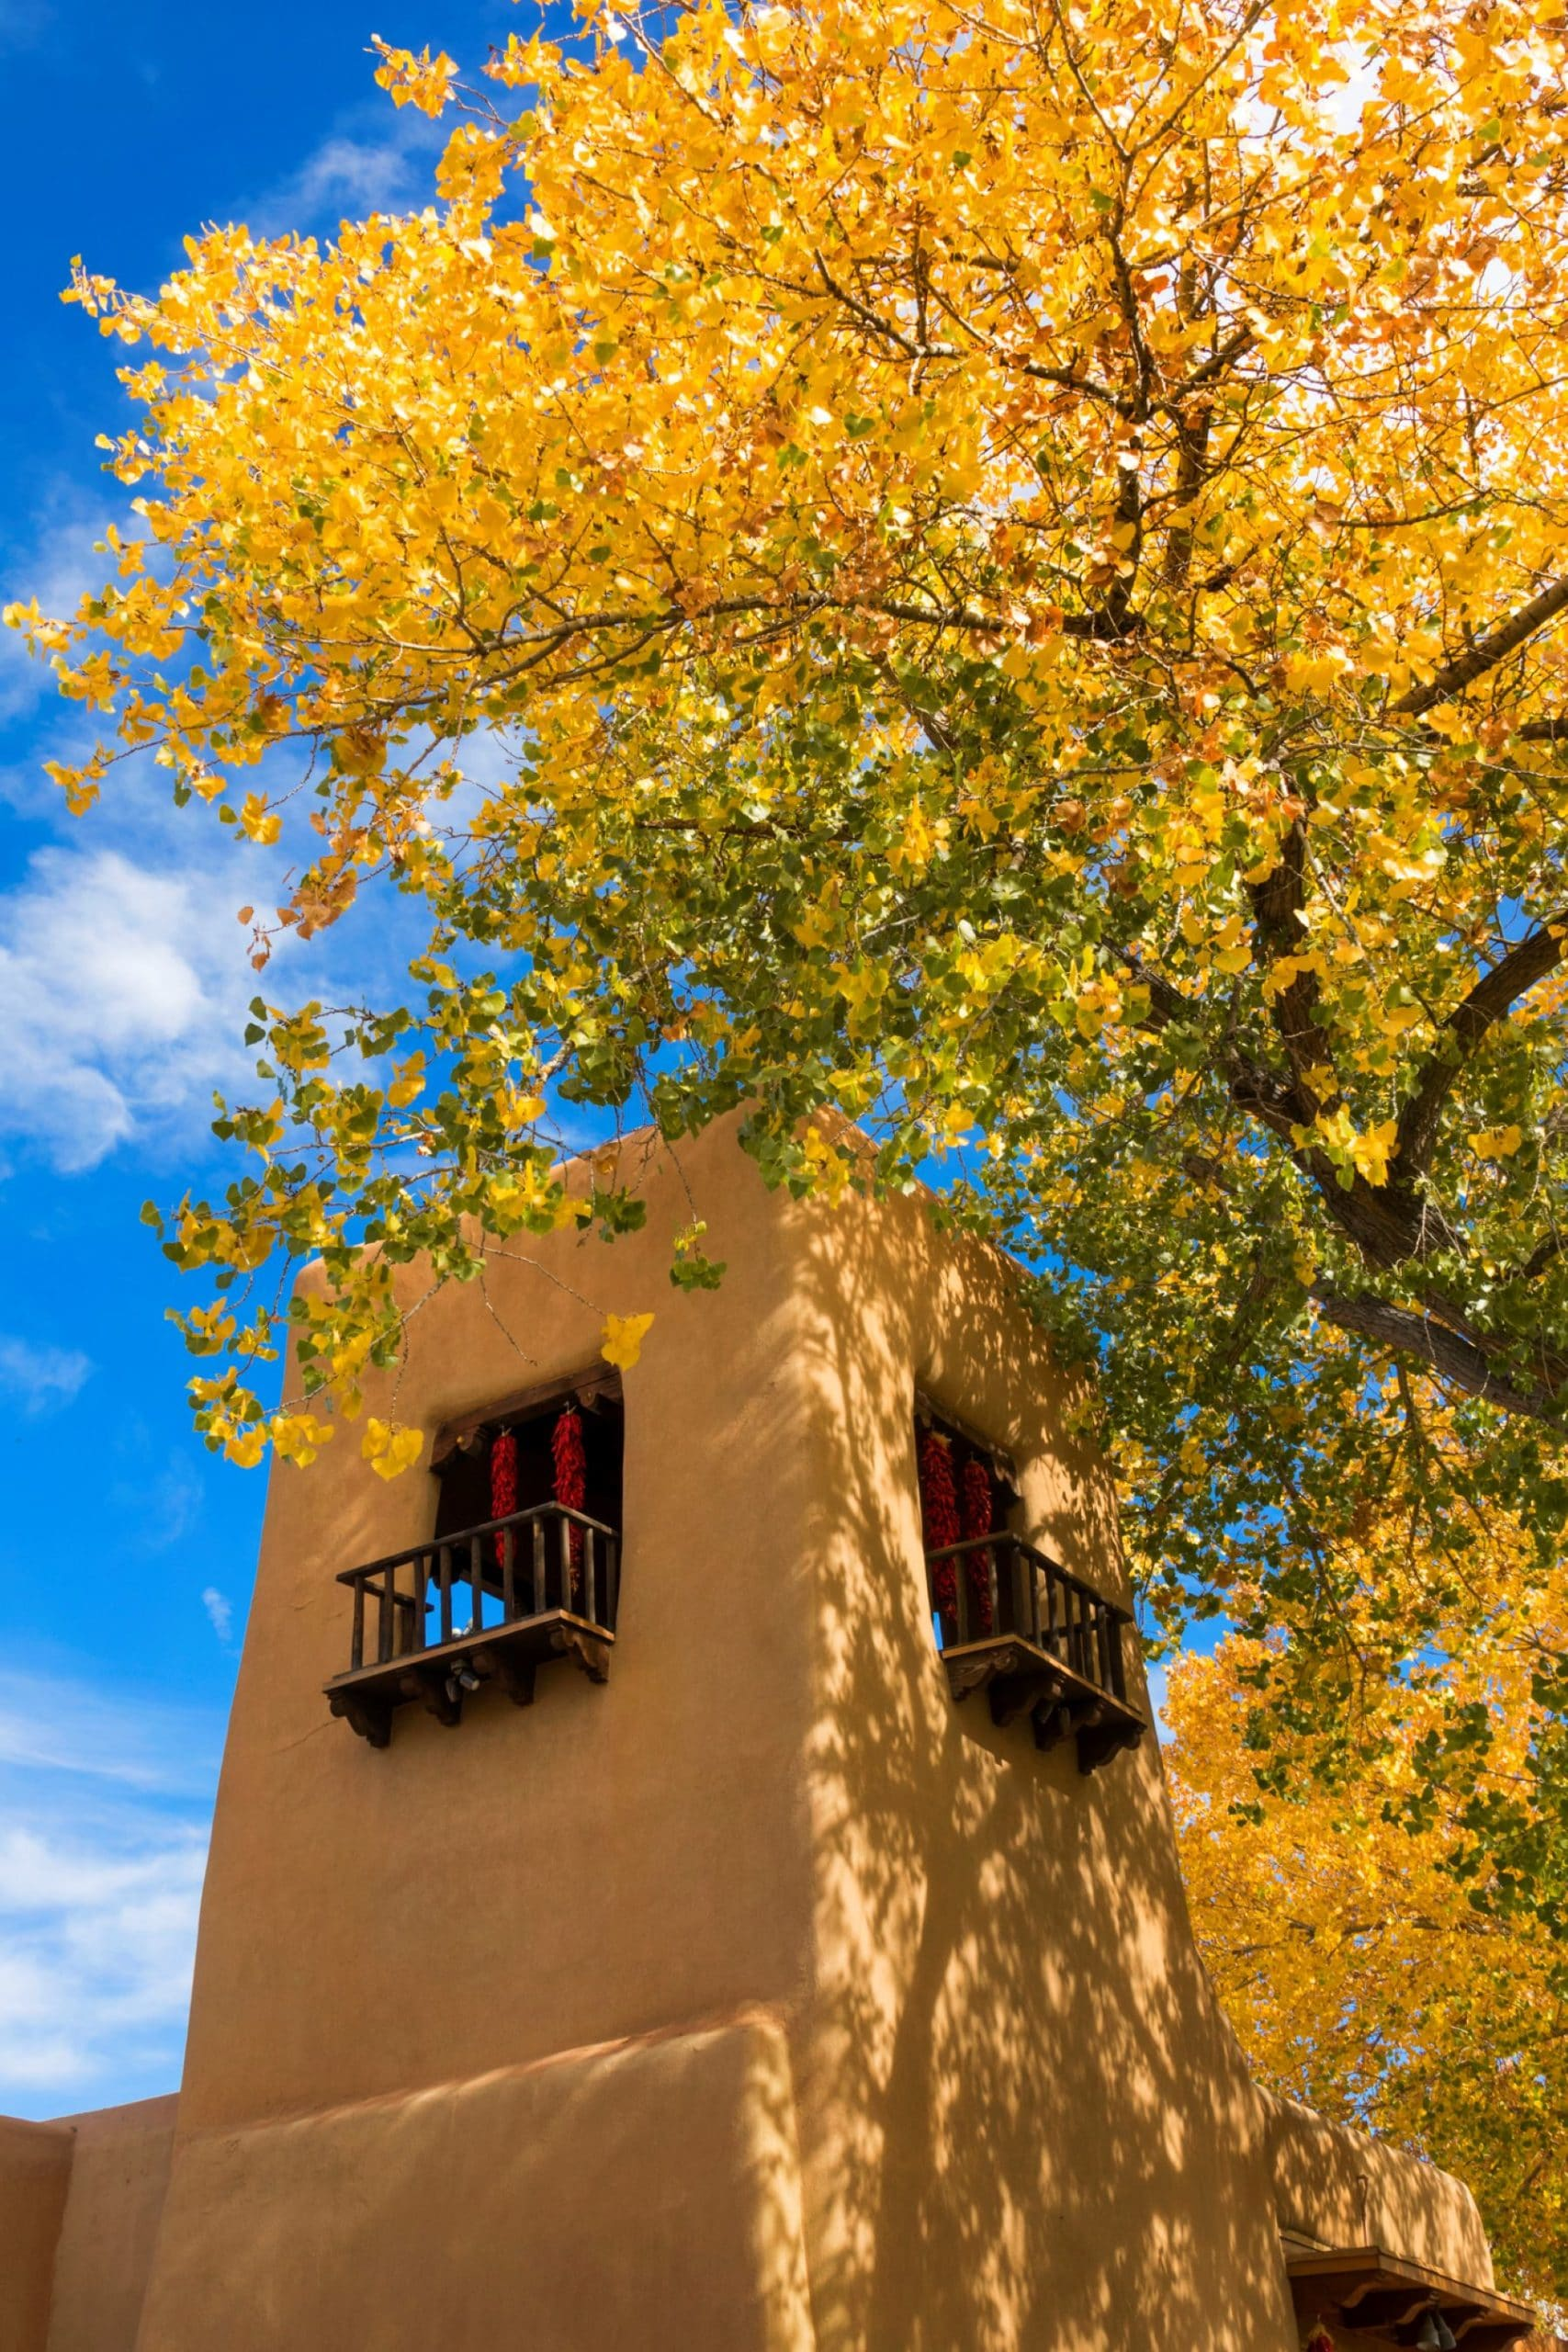 Santa Fe New Mexico building with bright colors